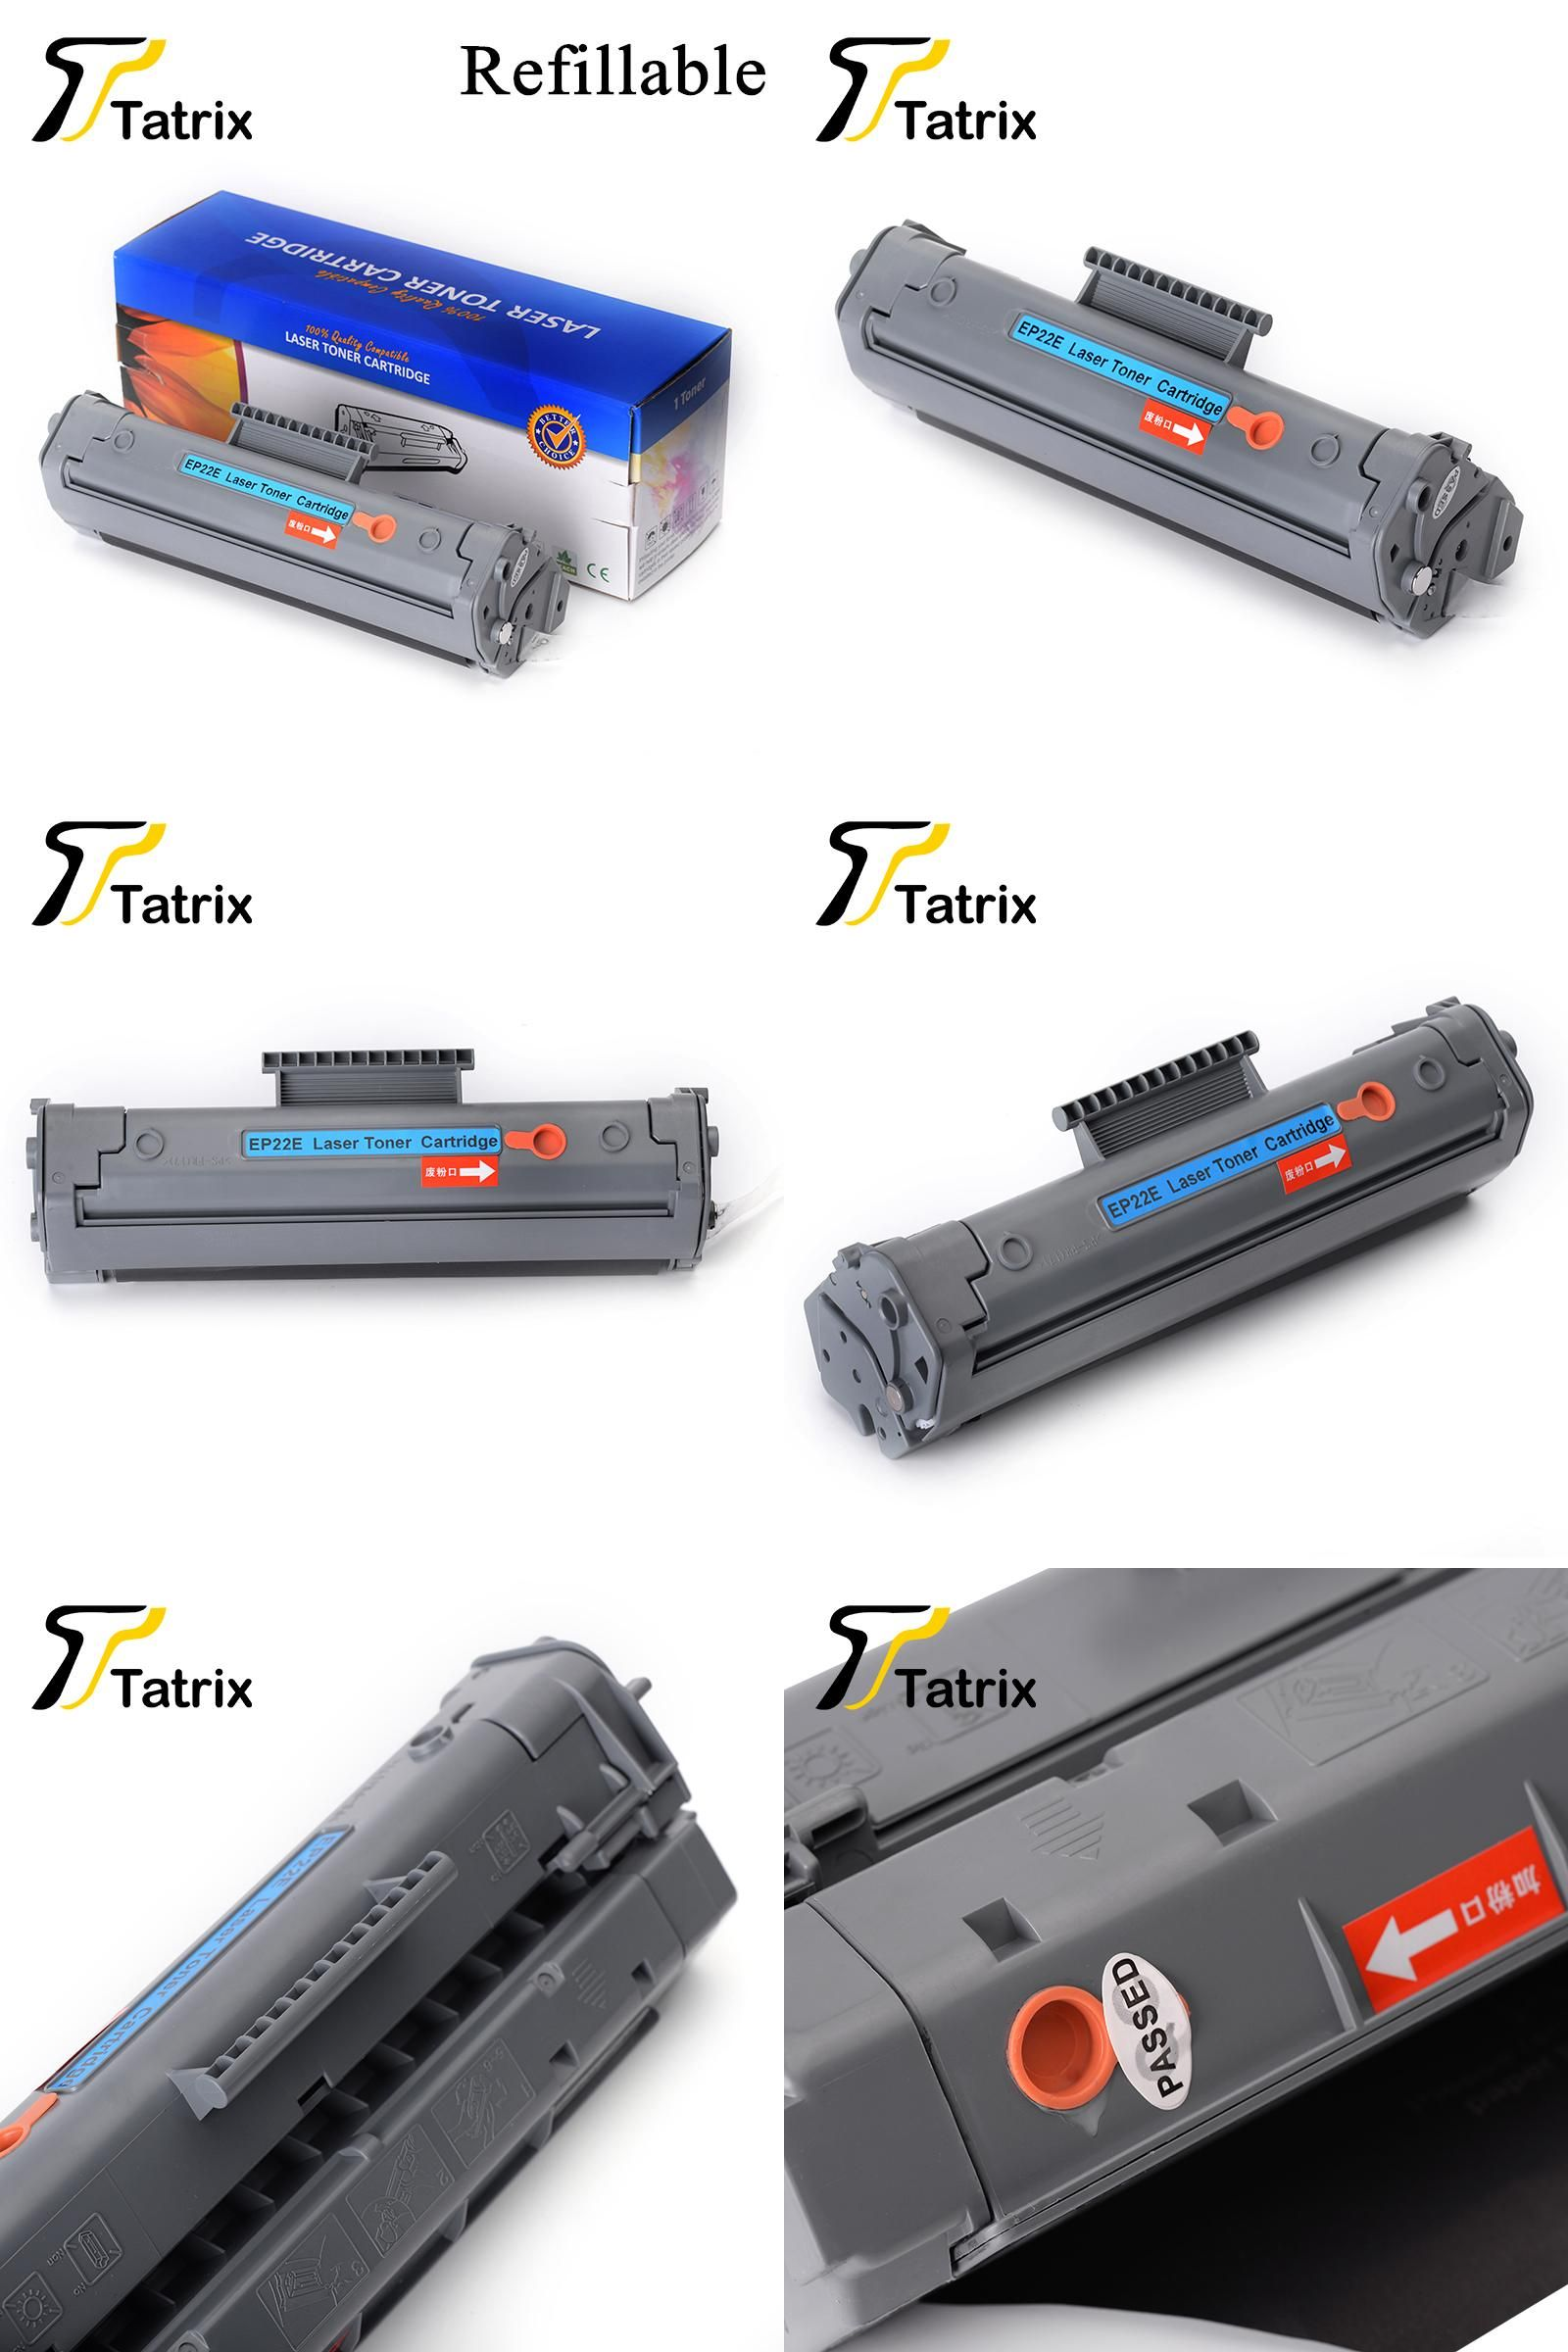 Visit To Buy 22 Cartridge For Canon Ep22 Refillable Toner Cadtrige 810 Compatible